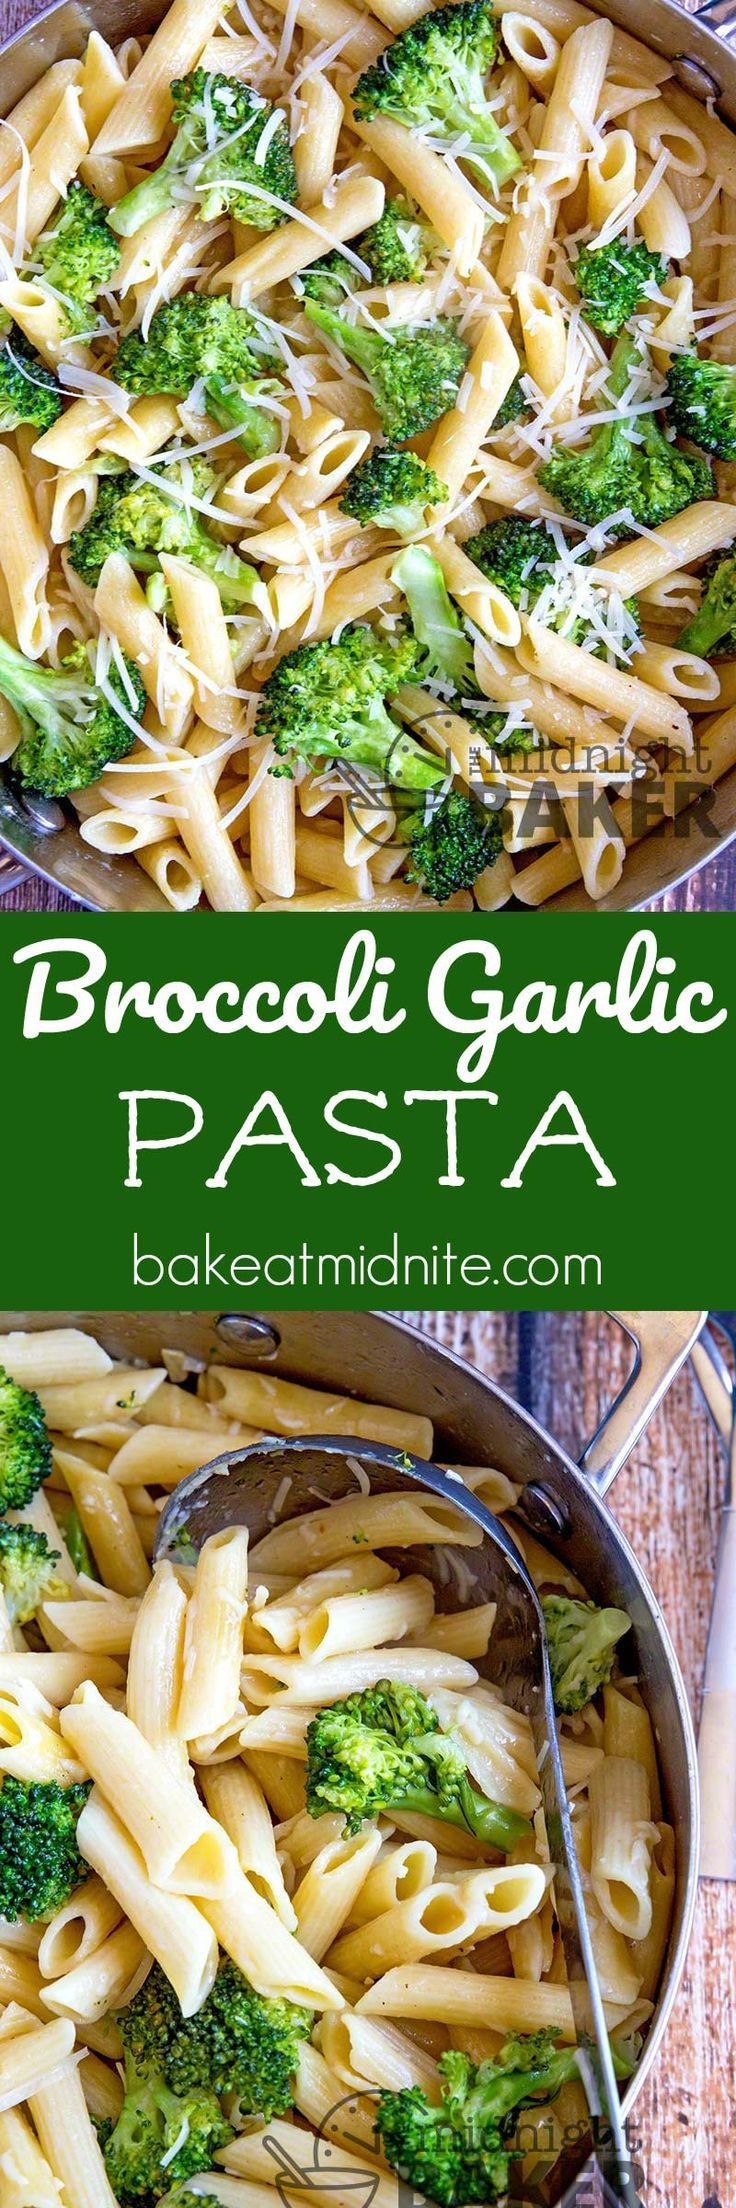 Crisp Broccoli And Zesty Garlic Make This Meatless Pasta Meal So Good Theyll Beg For Seconds Easy To Too Recipes